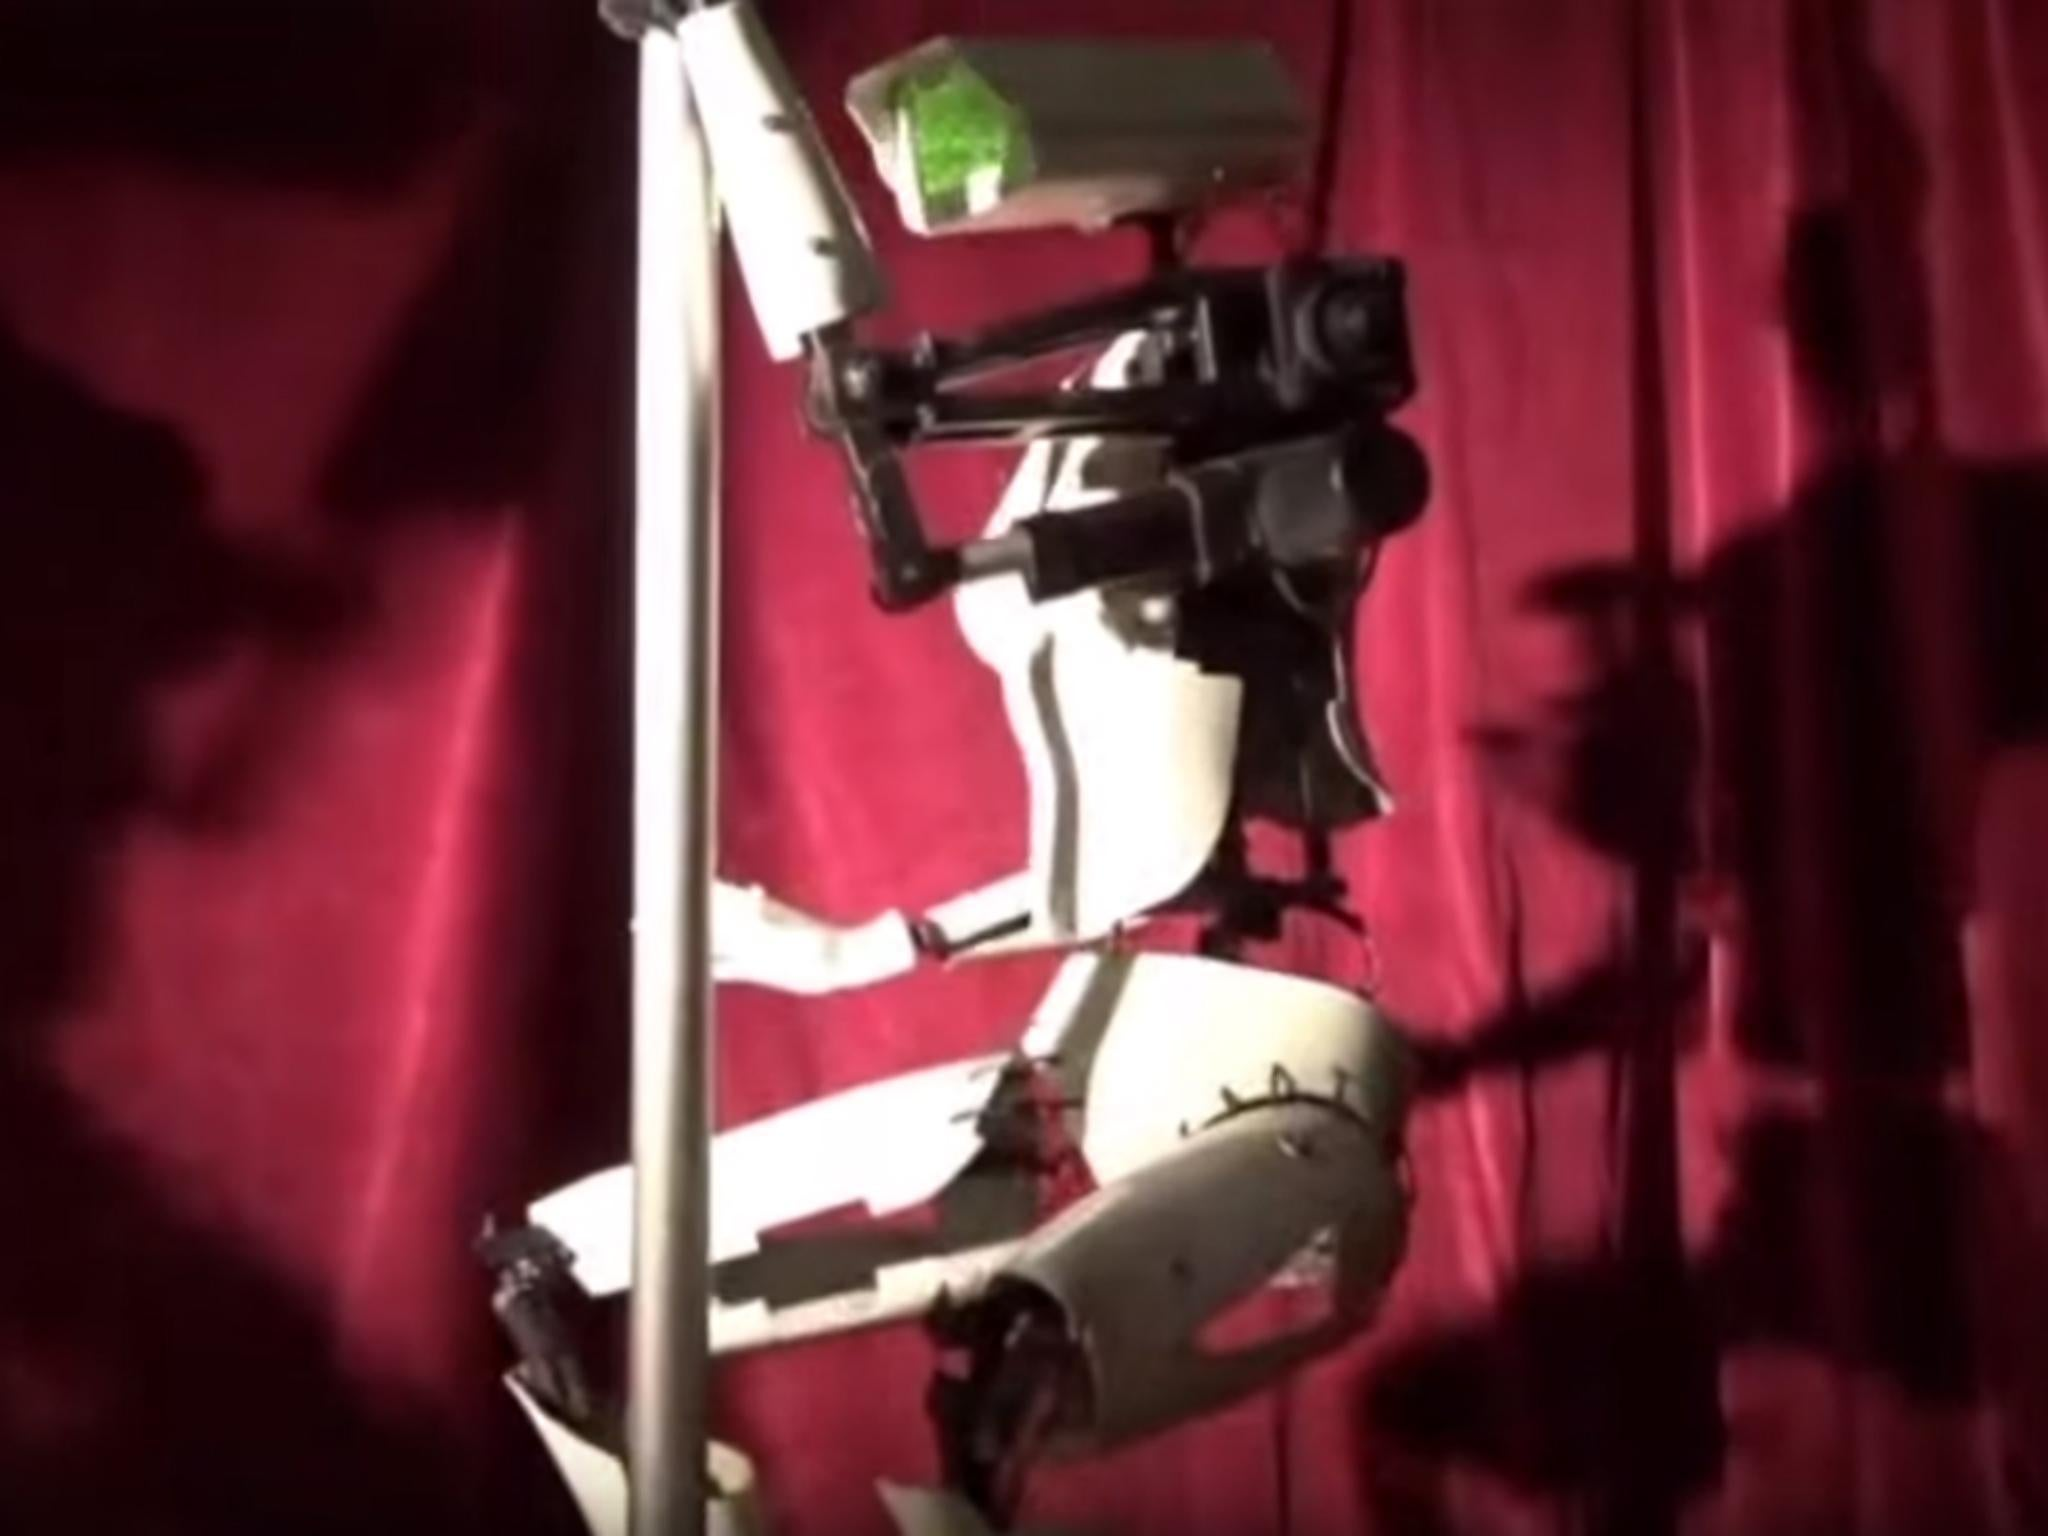 Robot pole-dancers with CCTV cameras for heads perform in Las Vegas club during CES 2018